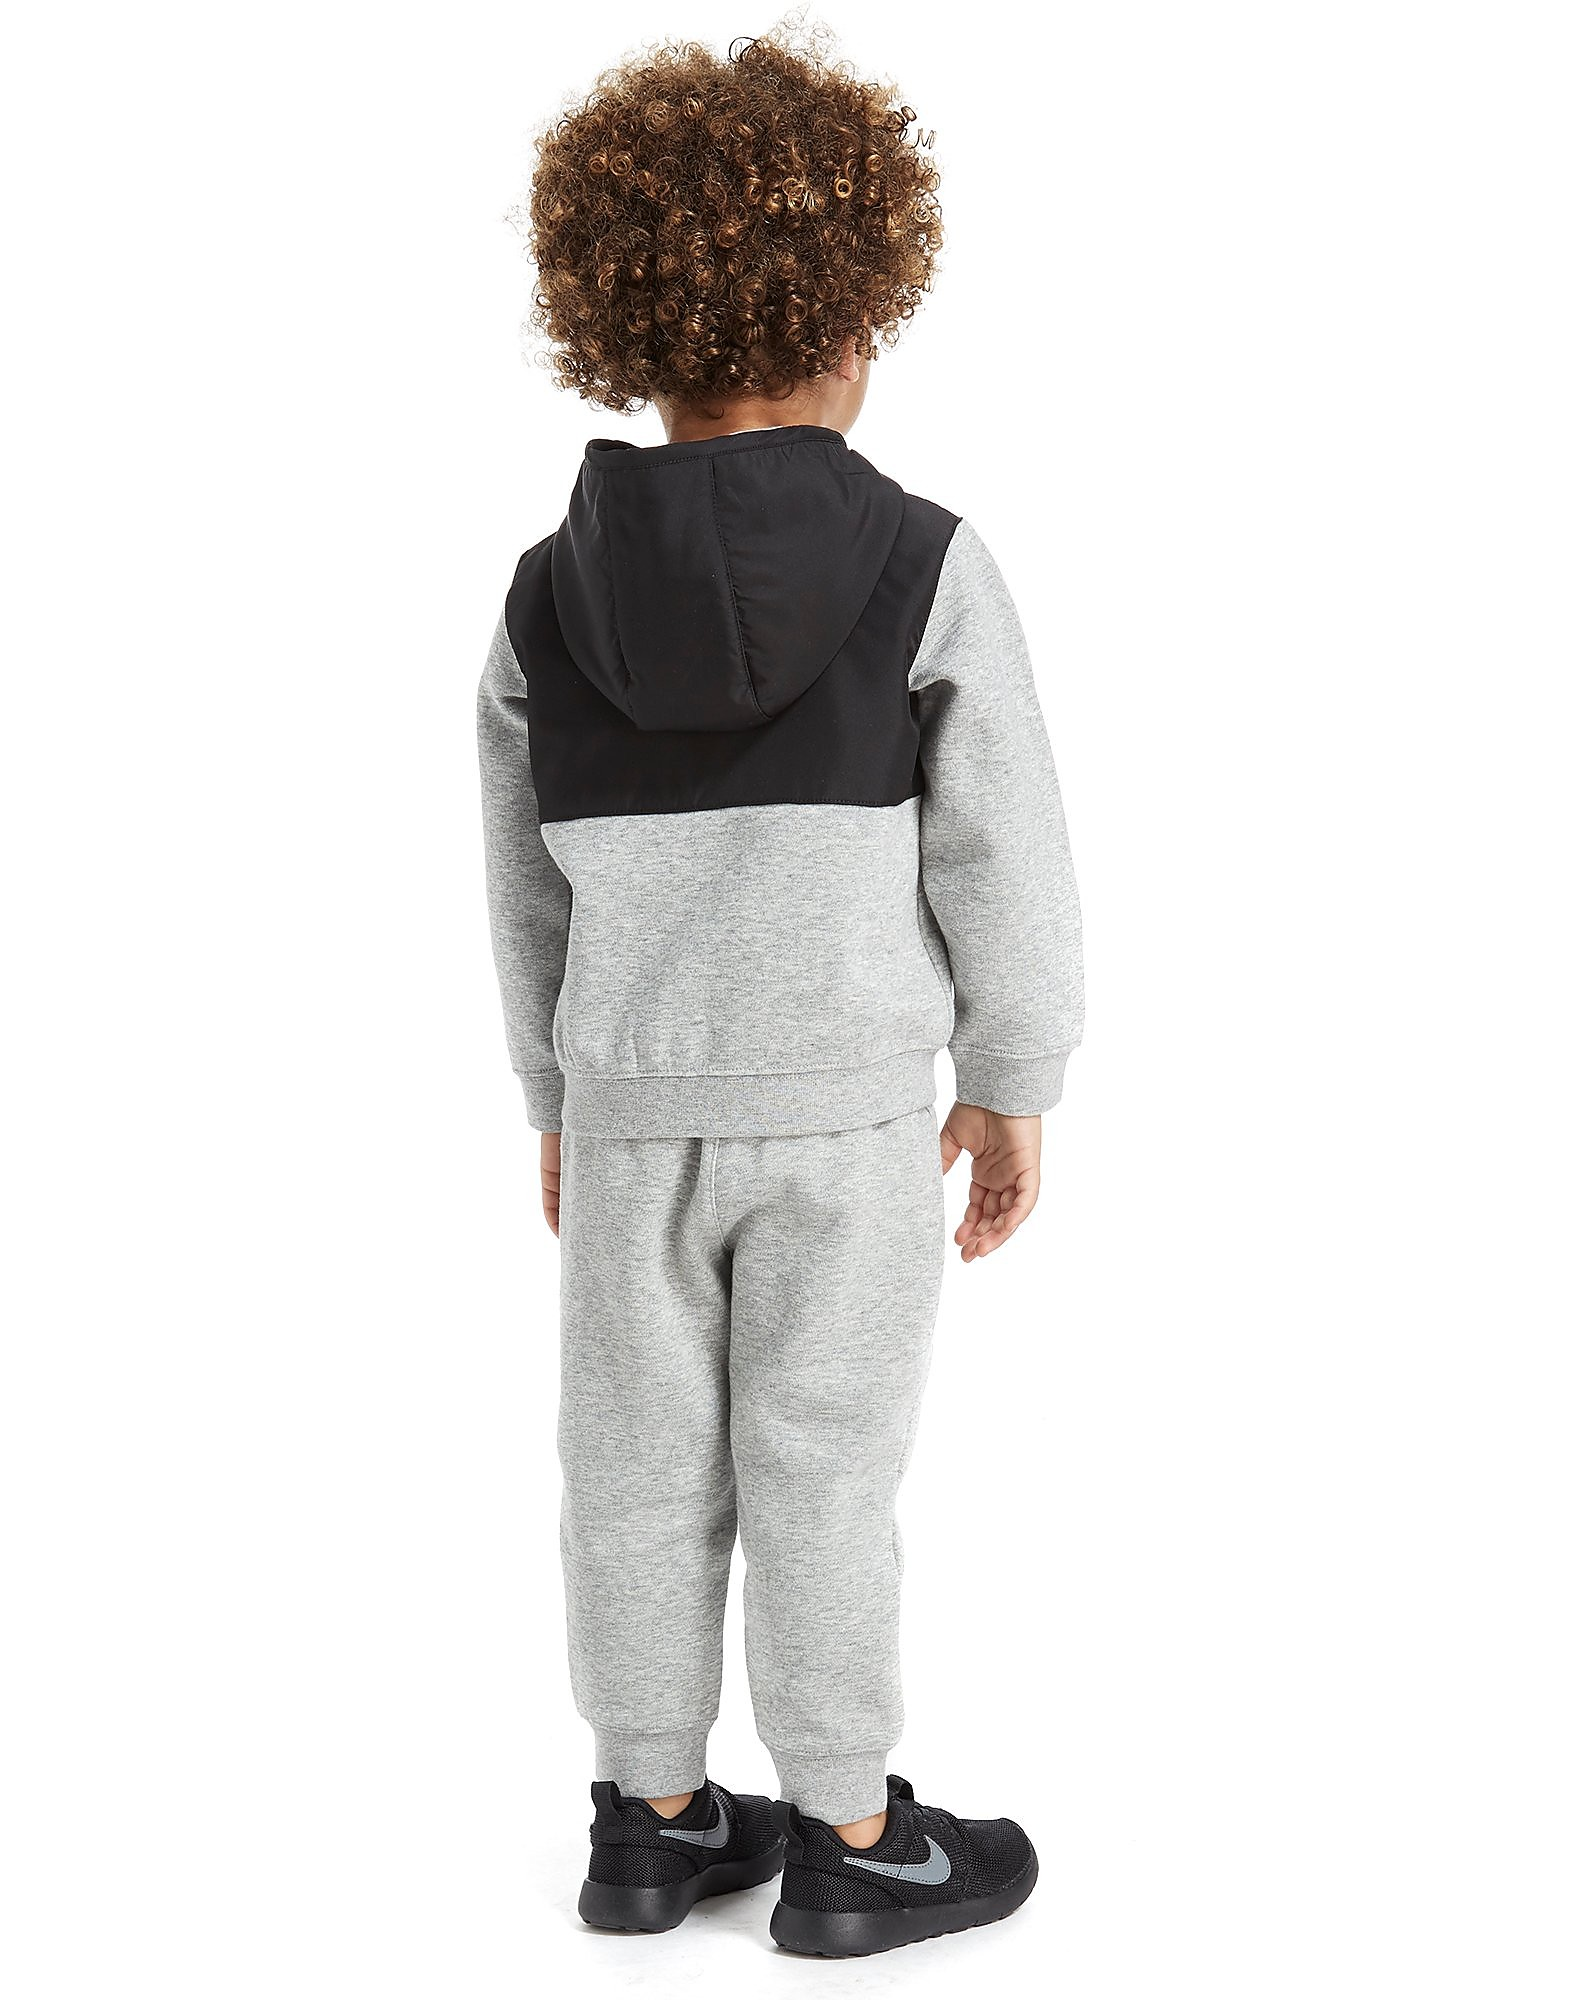 Nike Woven Mix Suit Infant